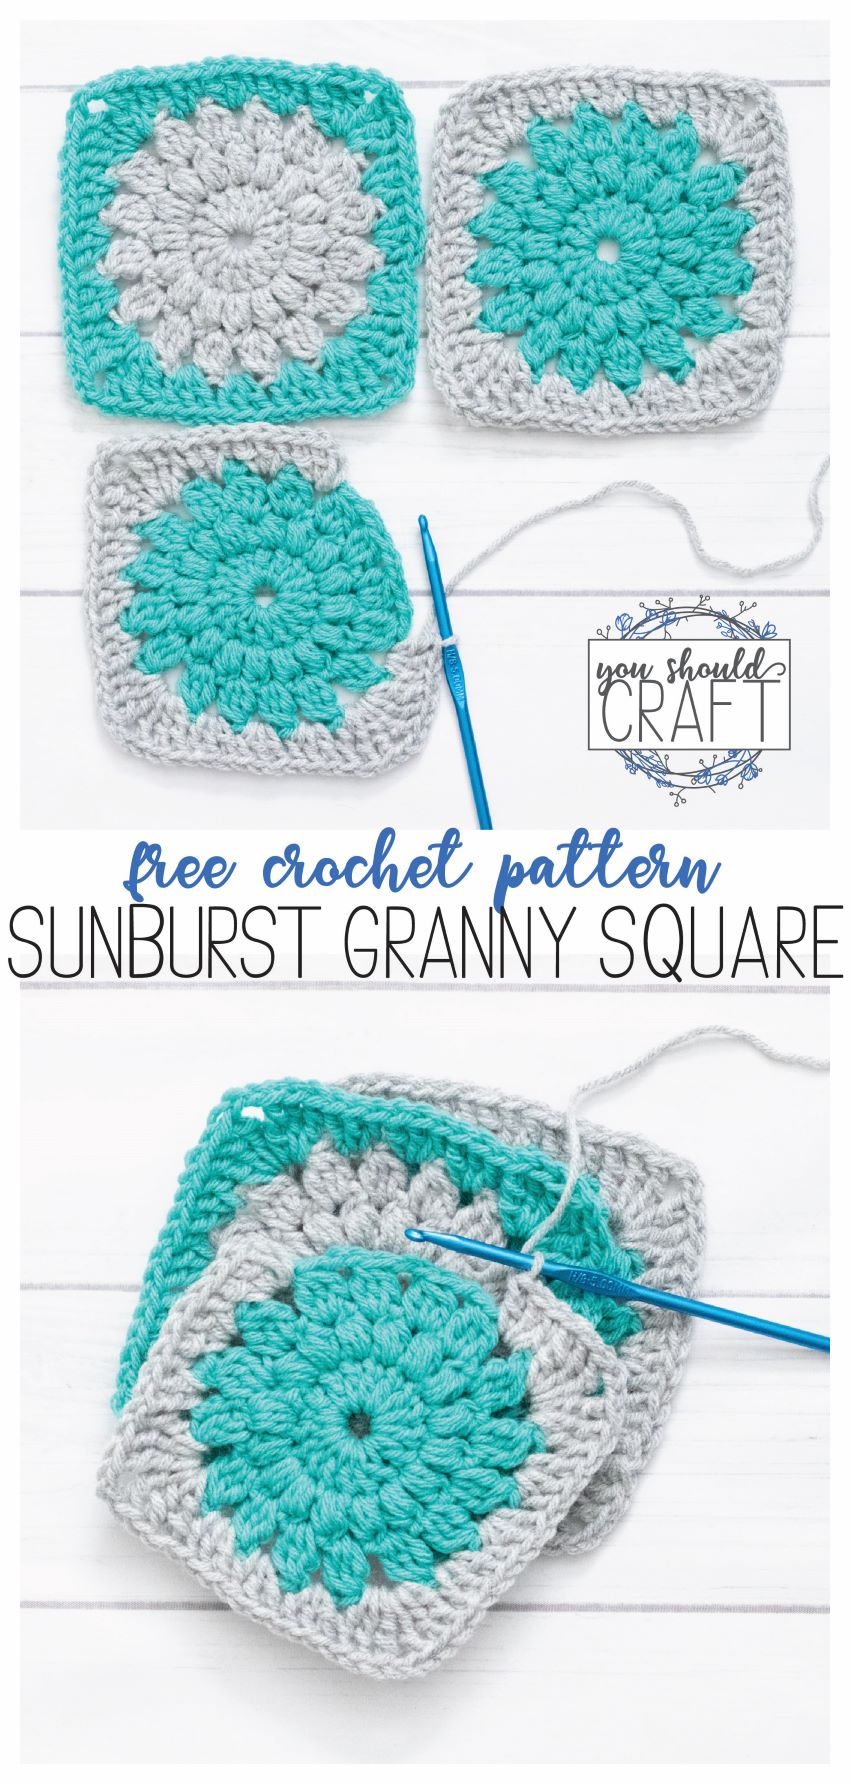 "collage of two sunburst granny square images with the text ""Free crochet pattern: sunburst granny square"""